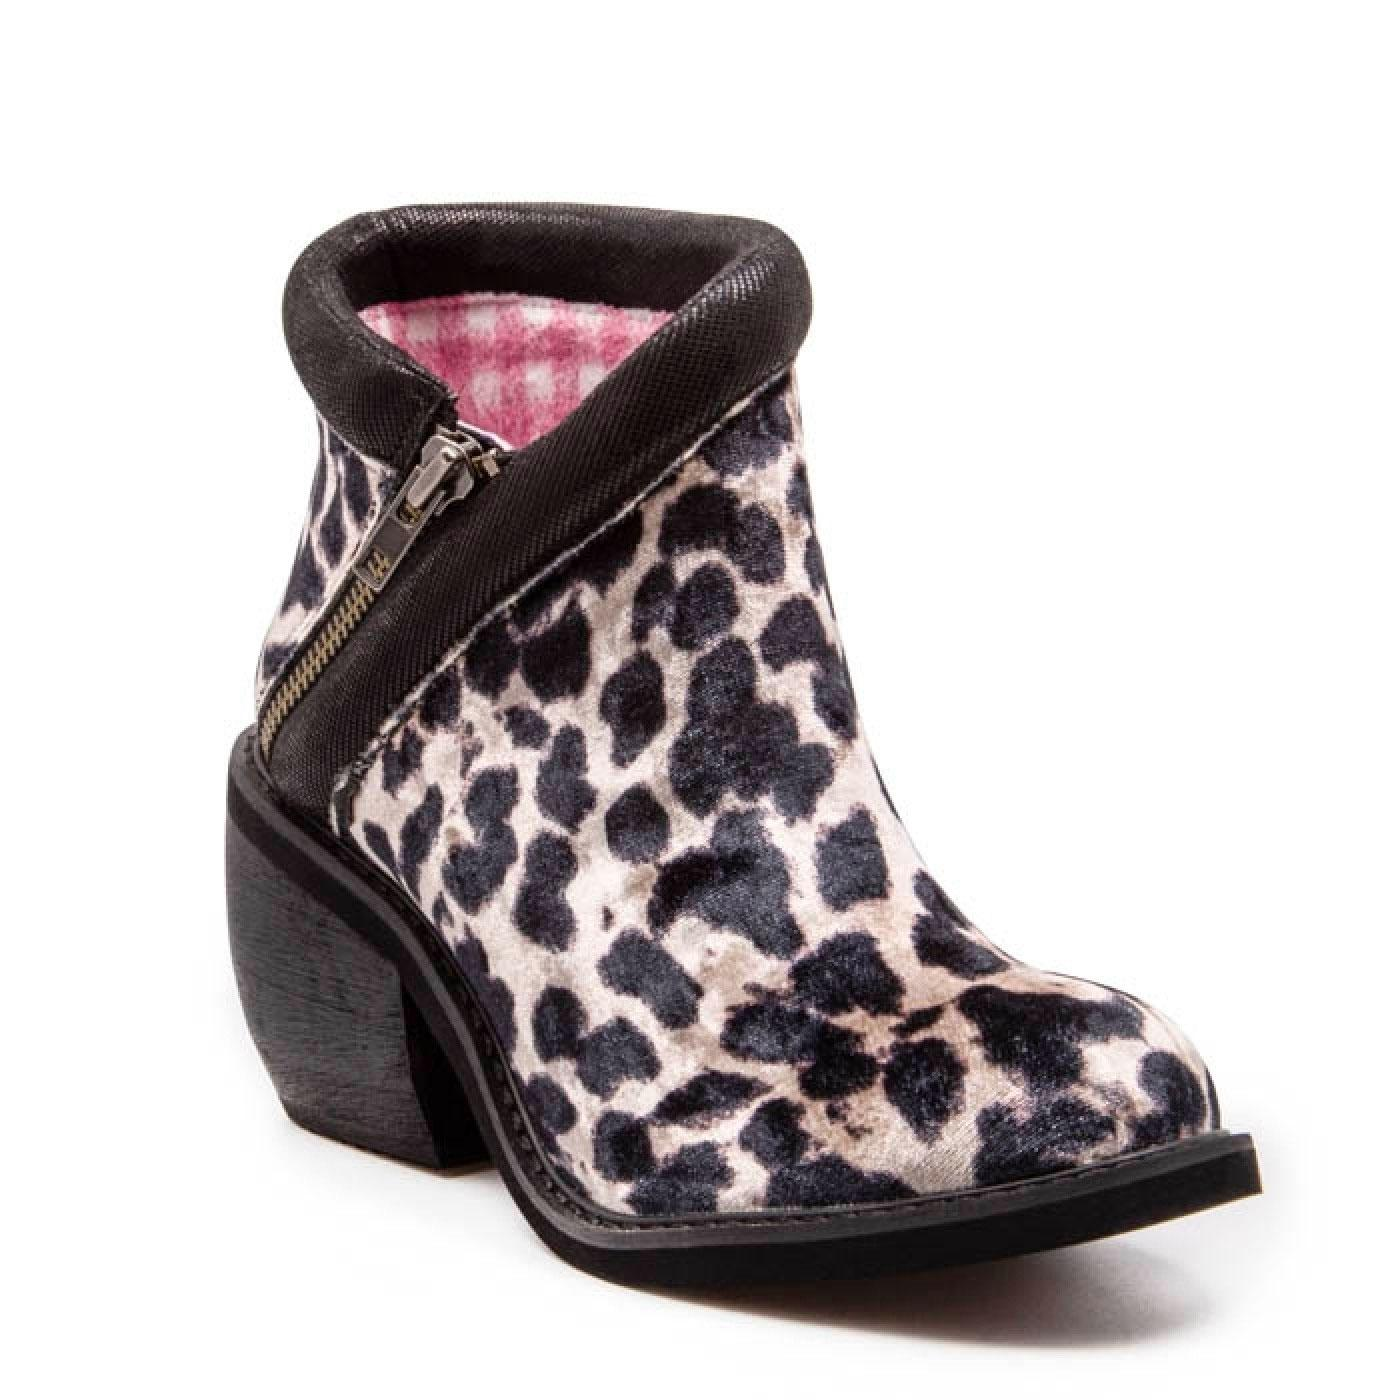 Eggie Soldiers IRREGULAR CHOICE Leopard Print Boot